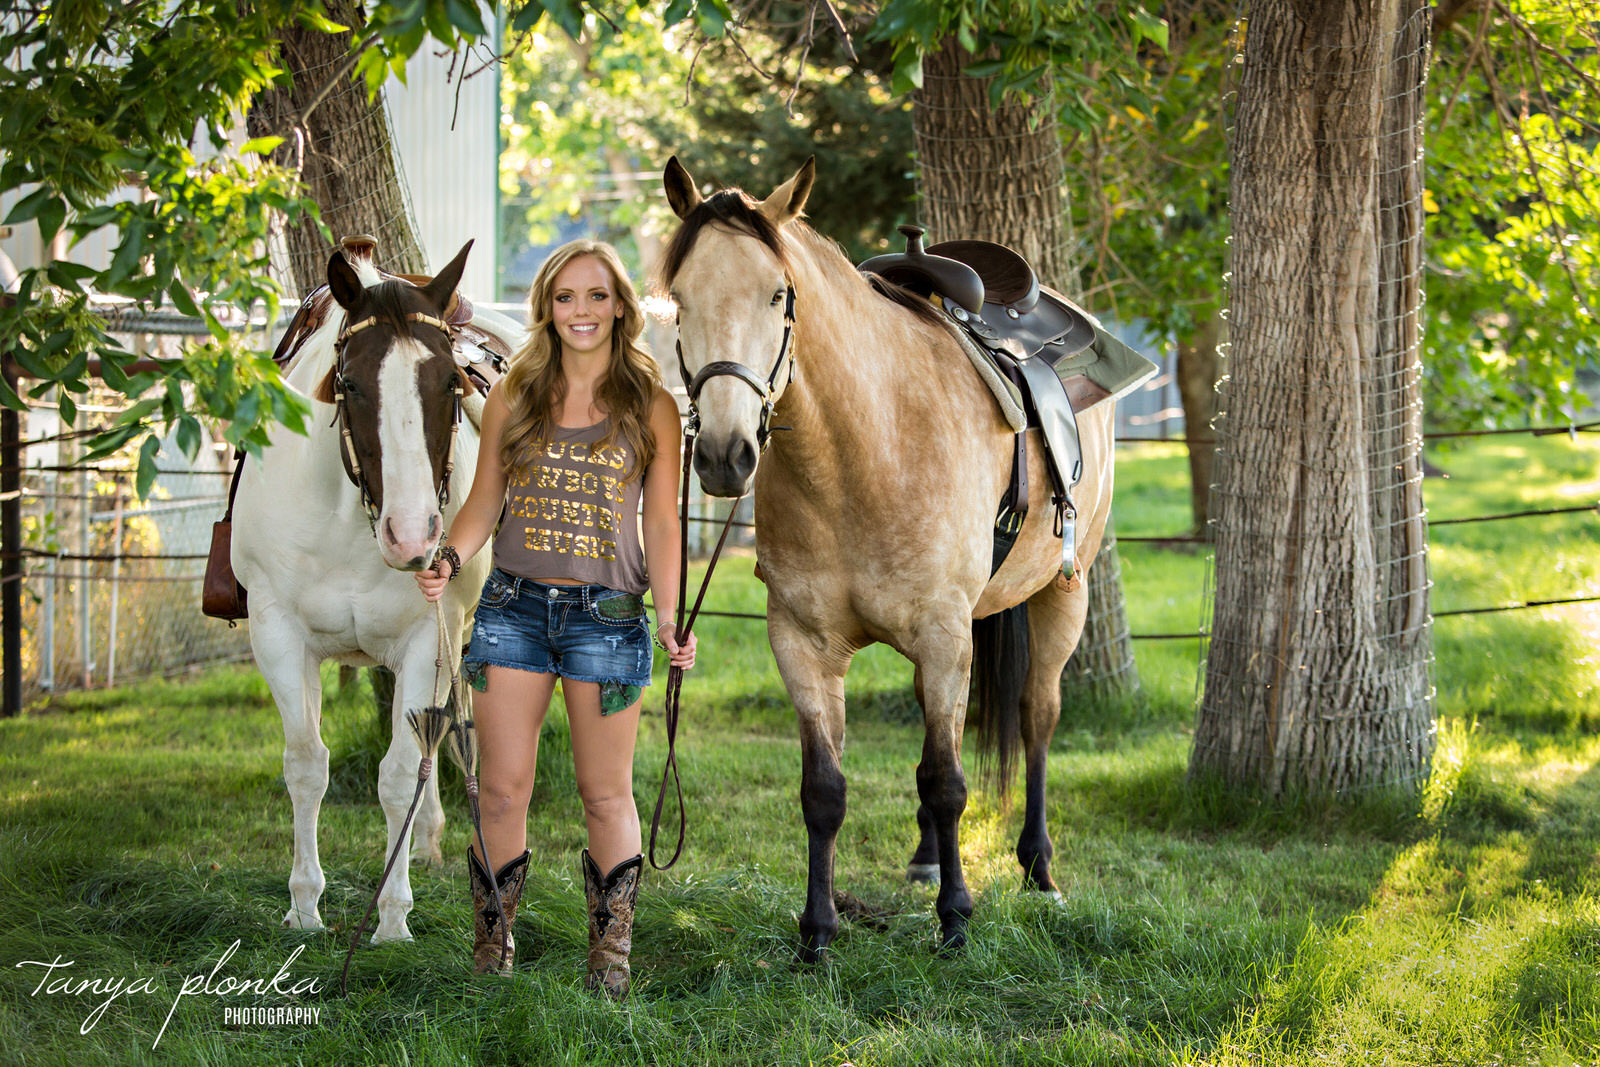 blonde woman stands between two horses while holding reigns in Taber